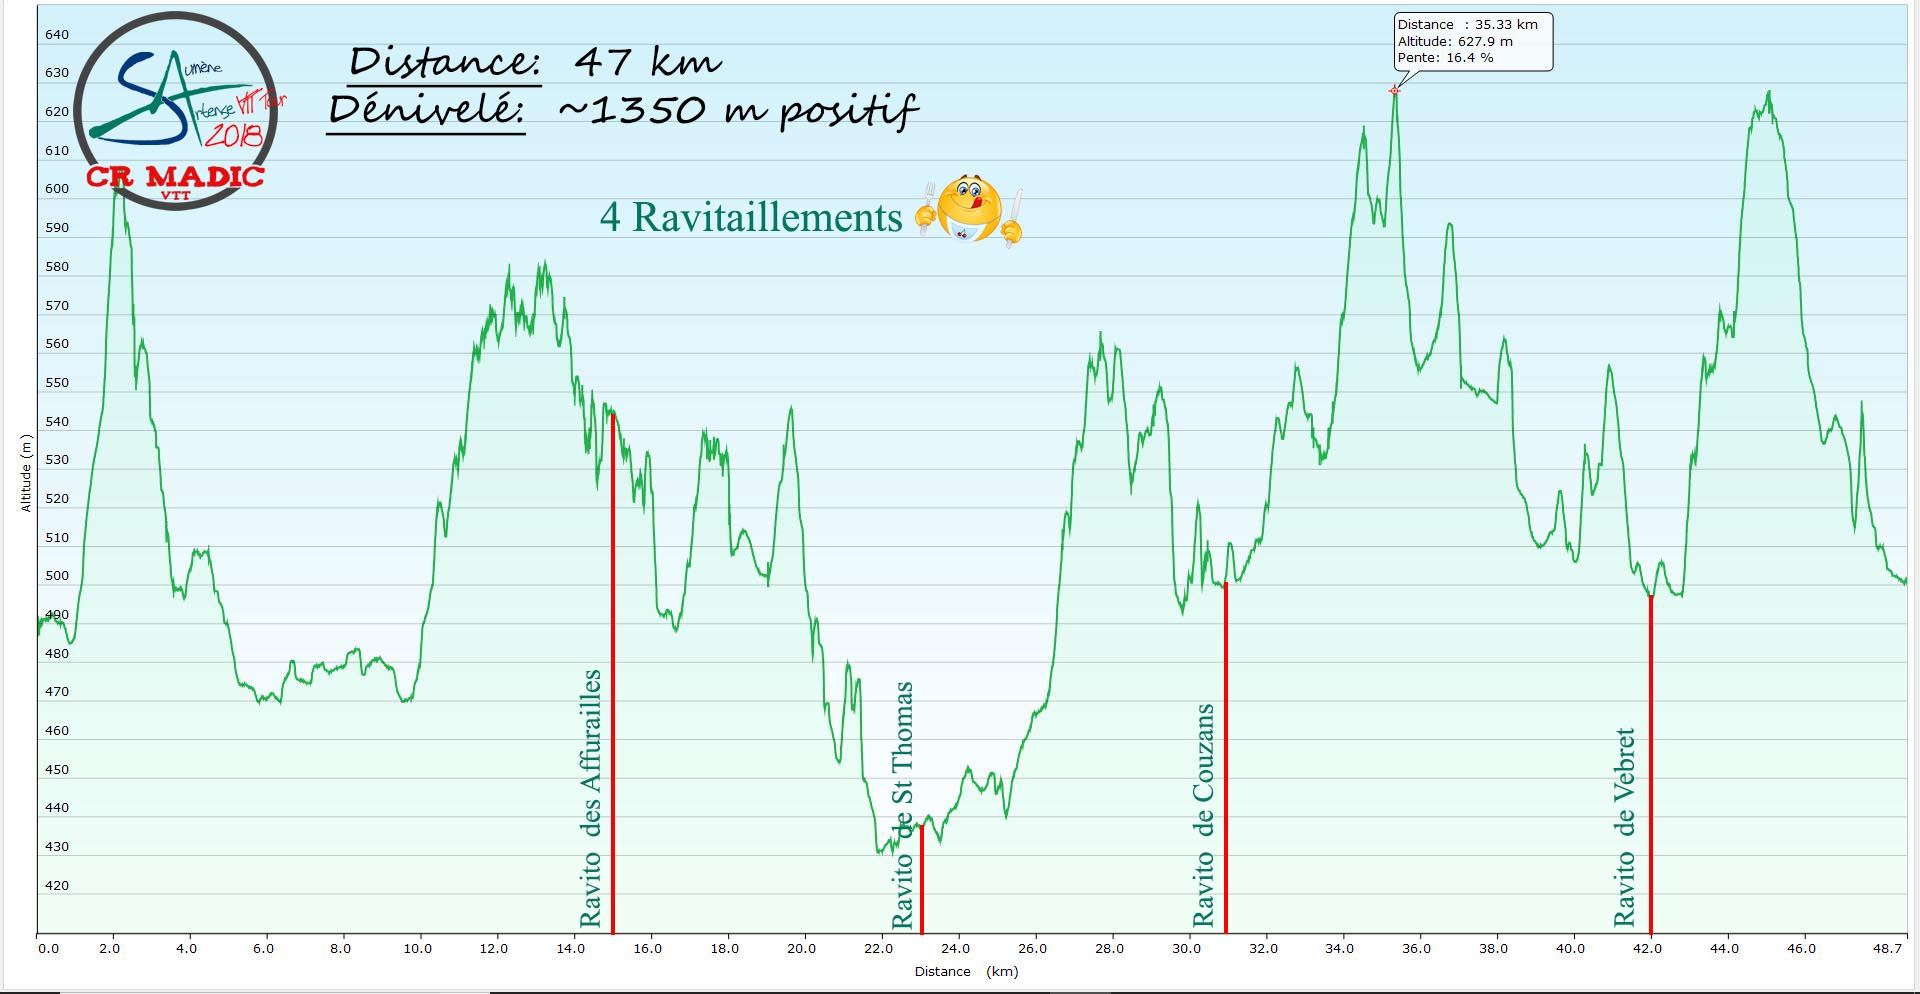 2018 savtt tour 47 km denivele